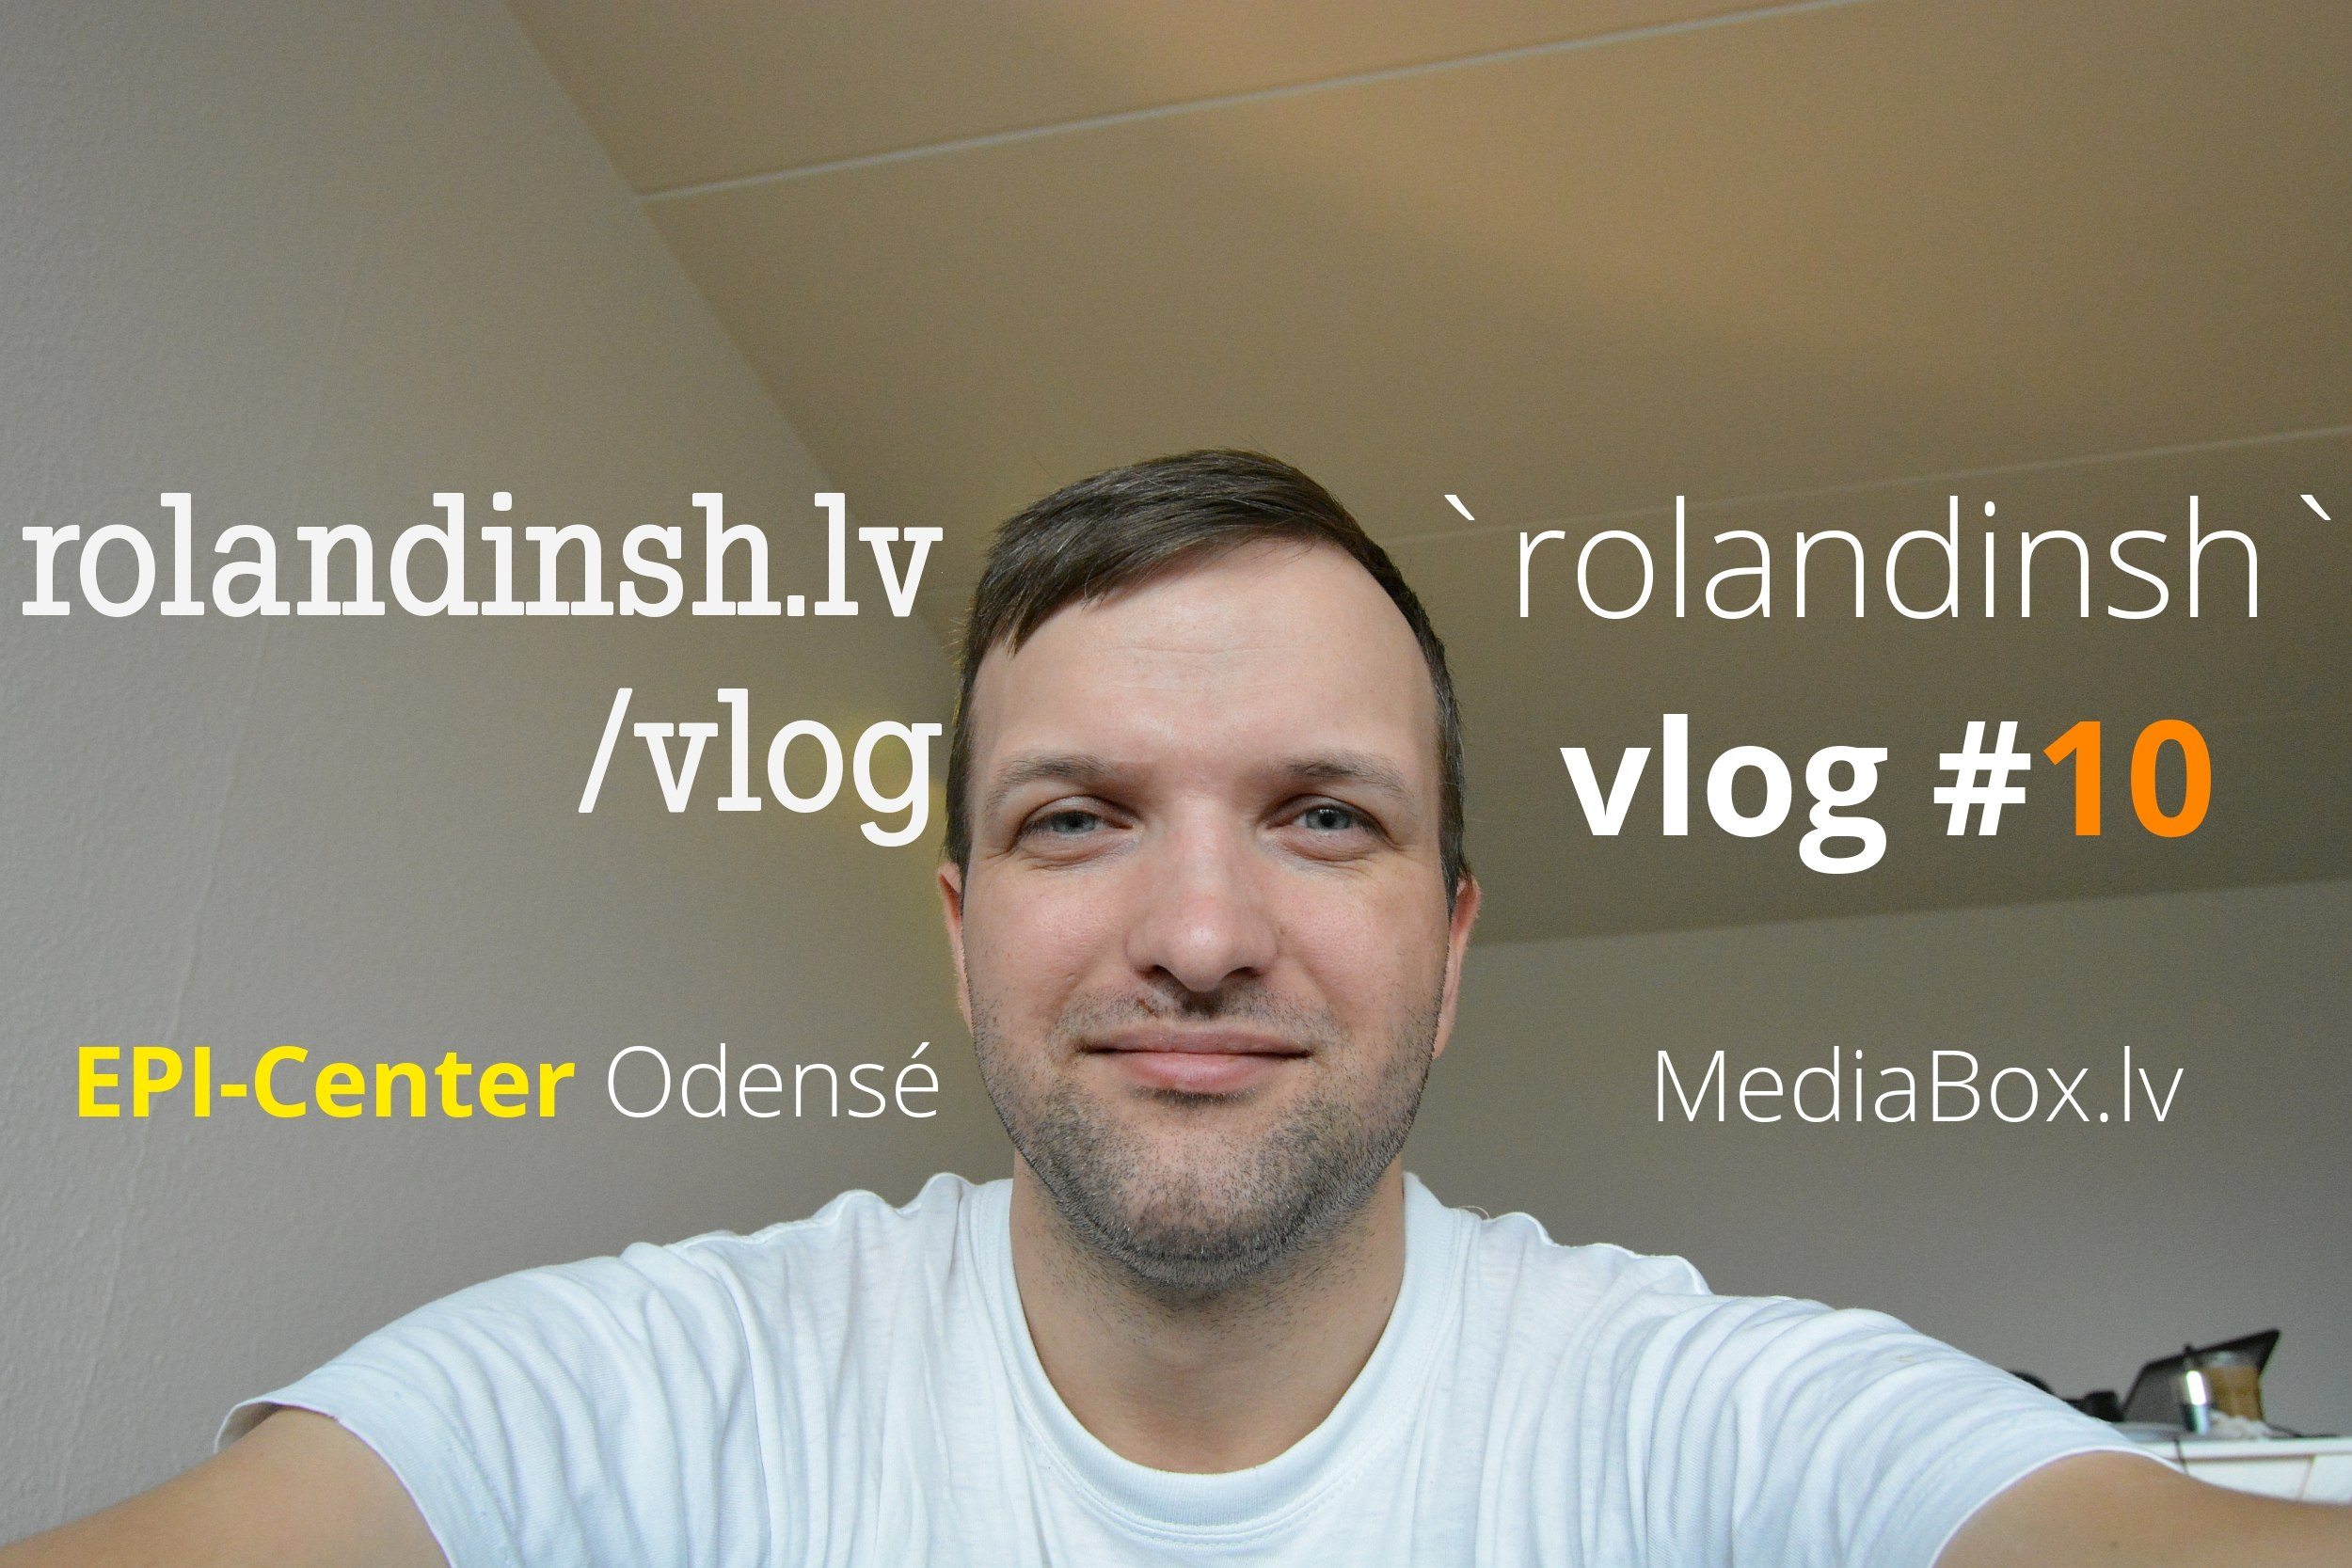 Vlog #10 - EPI-Center Odensē